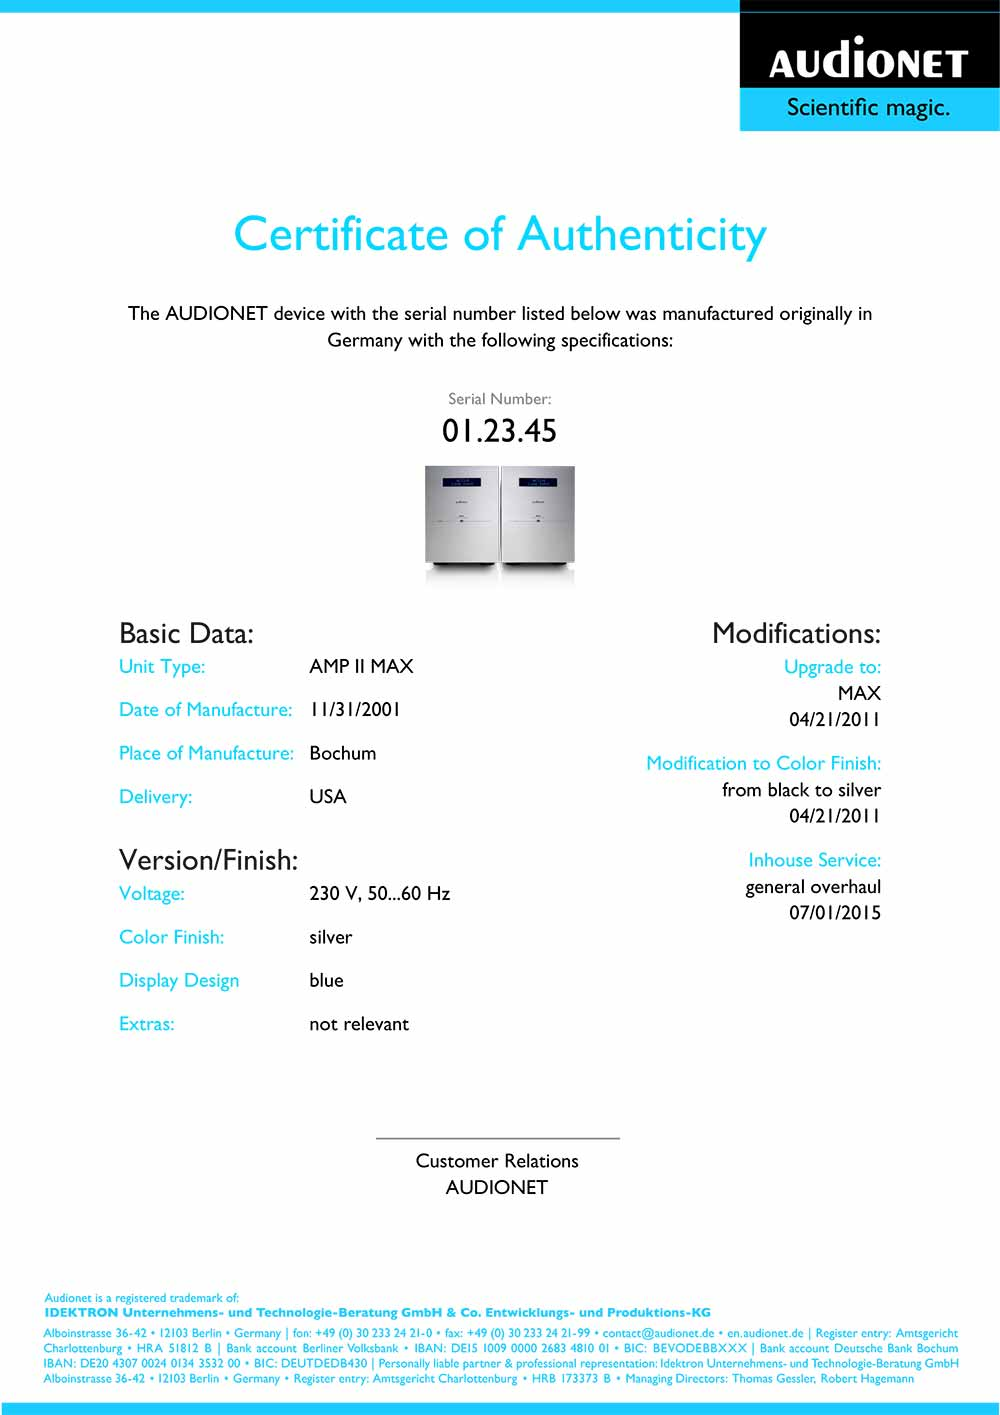 Audionet Certificate of Authenticity